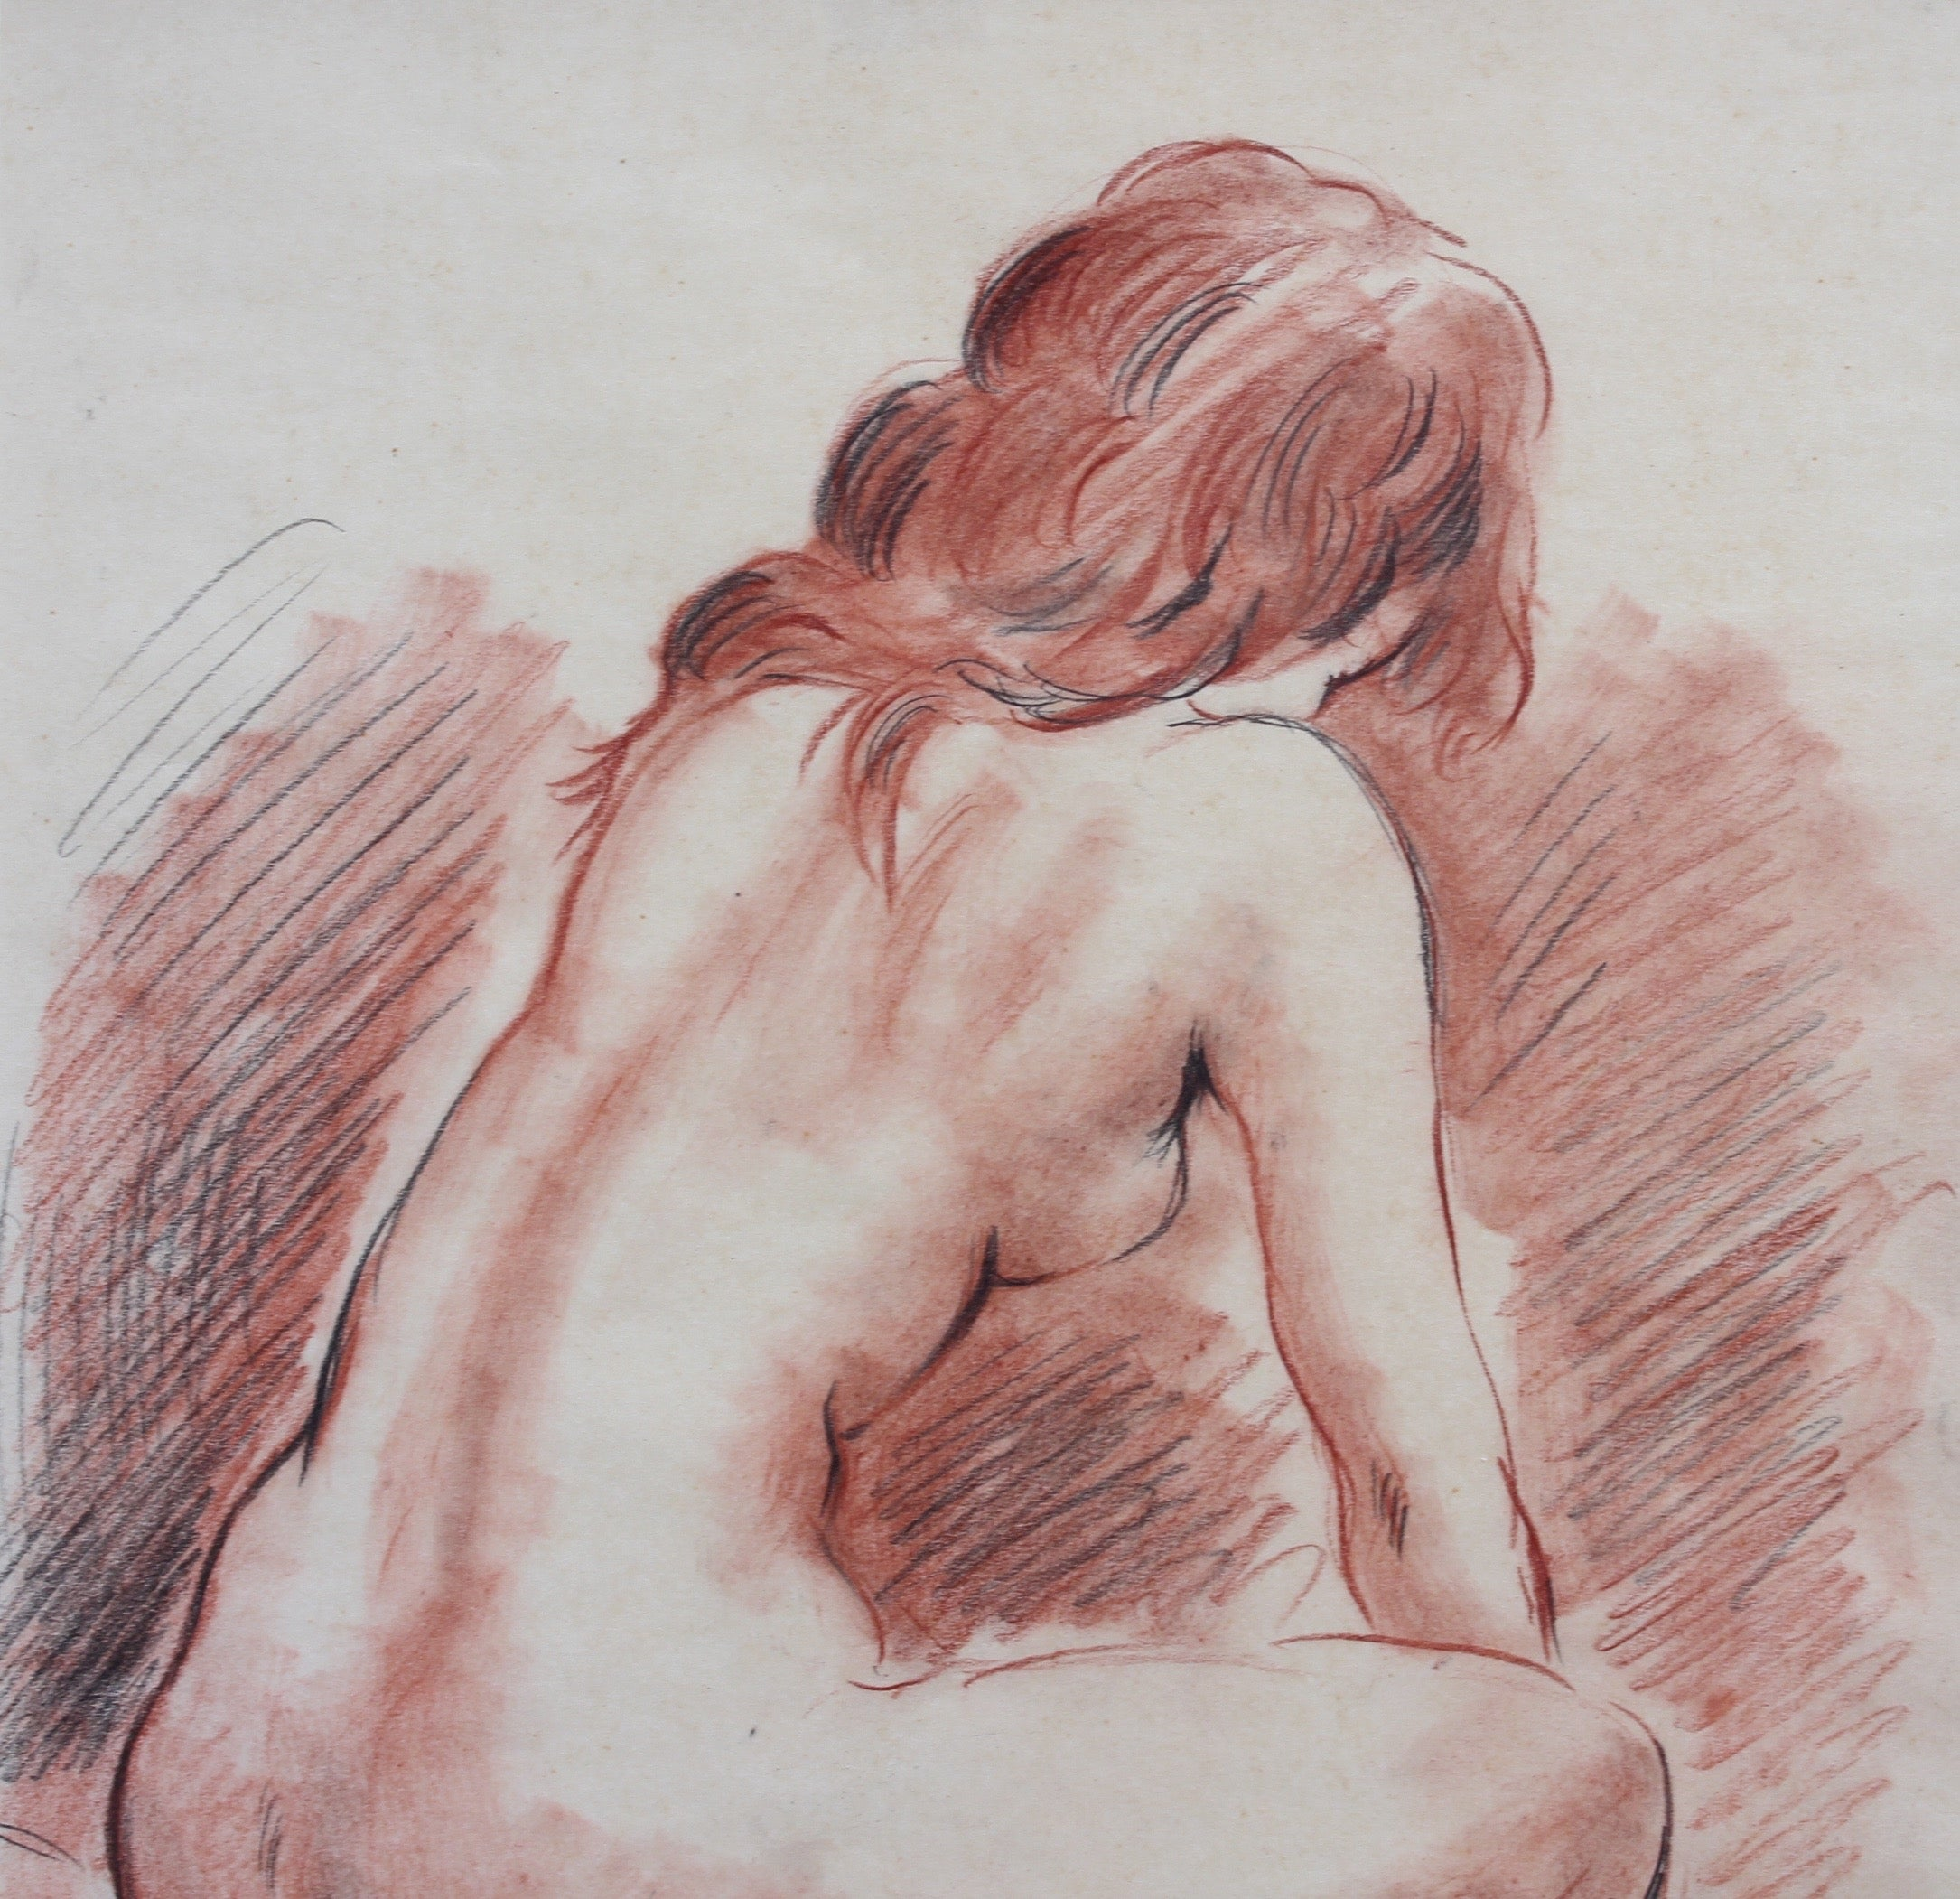 'Reclining Nude Young Women' by Fred Pailhès (circa 1950s)